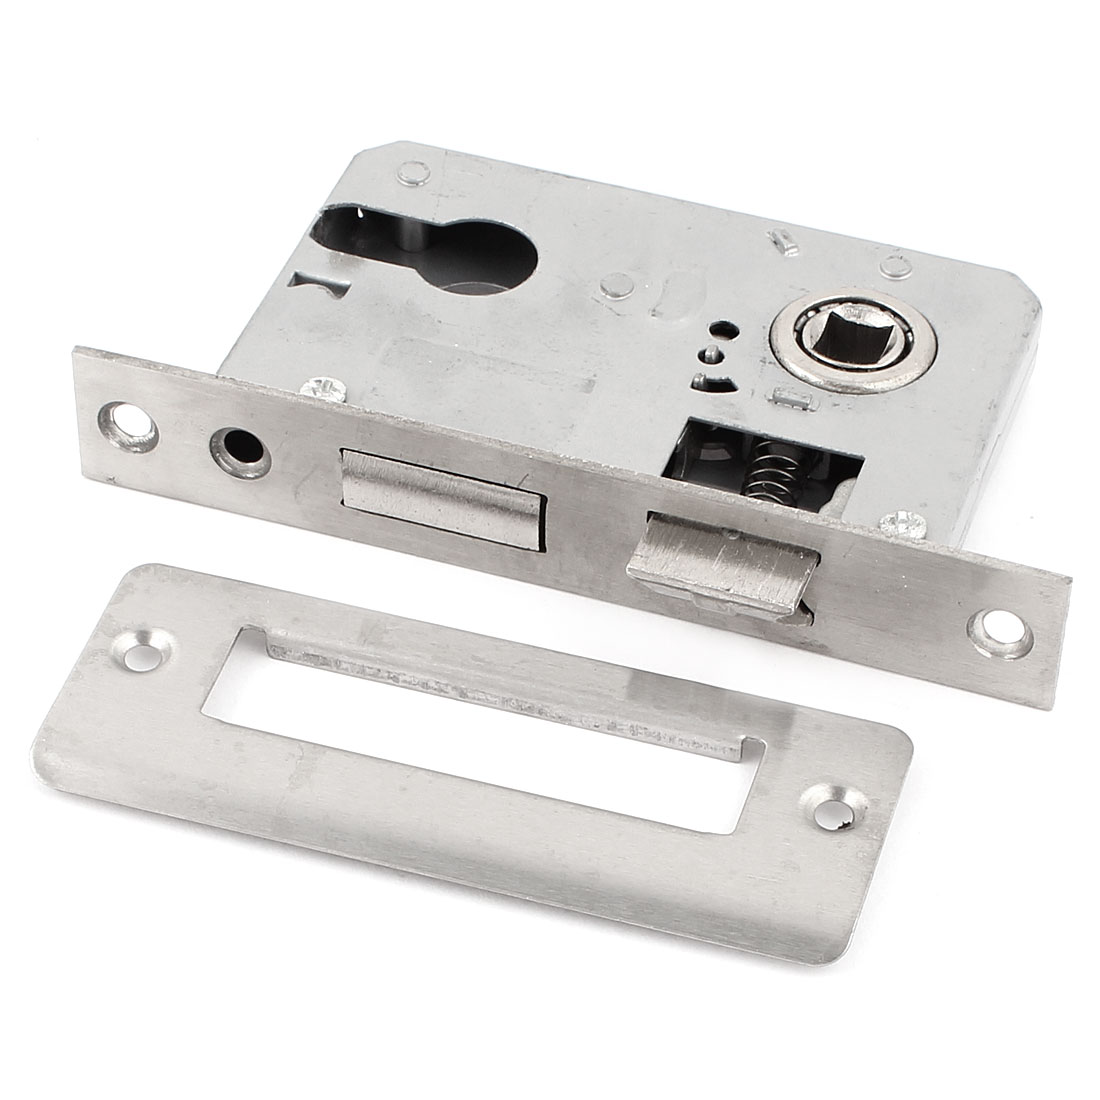 Office Home Security Metal Door Locking Gate Latch Lock Silver Tone(China (Mainland))